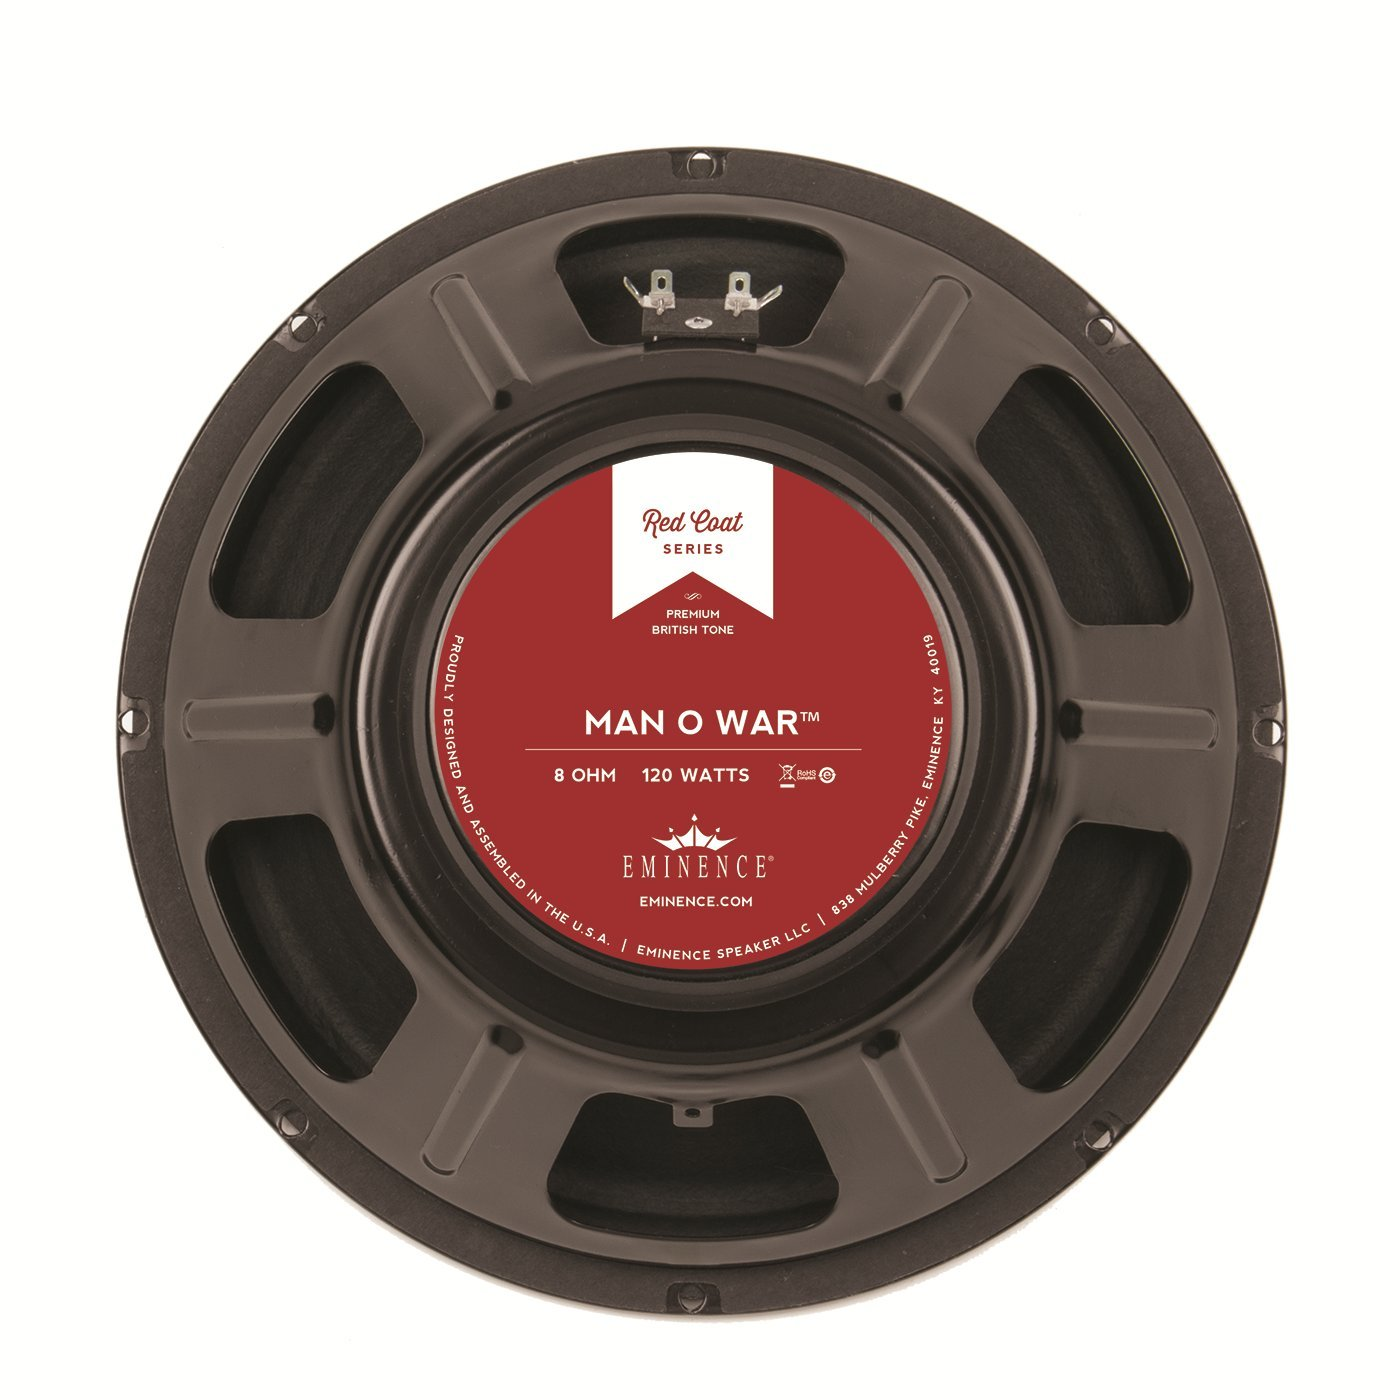 Eminence Red Coat Series Man O War 12'' Guitar Speaker, 120 Watts at 8 Ohms by Eminence (Image #1)